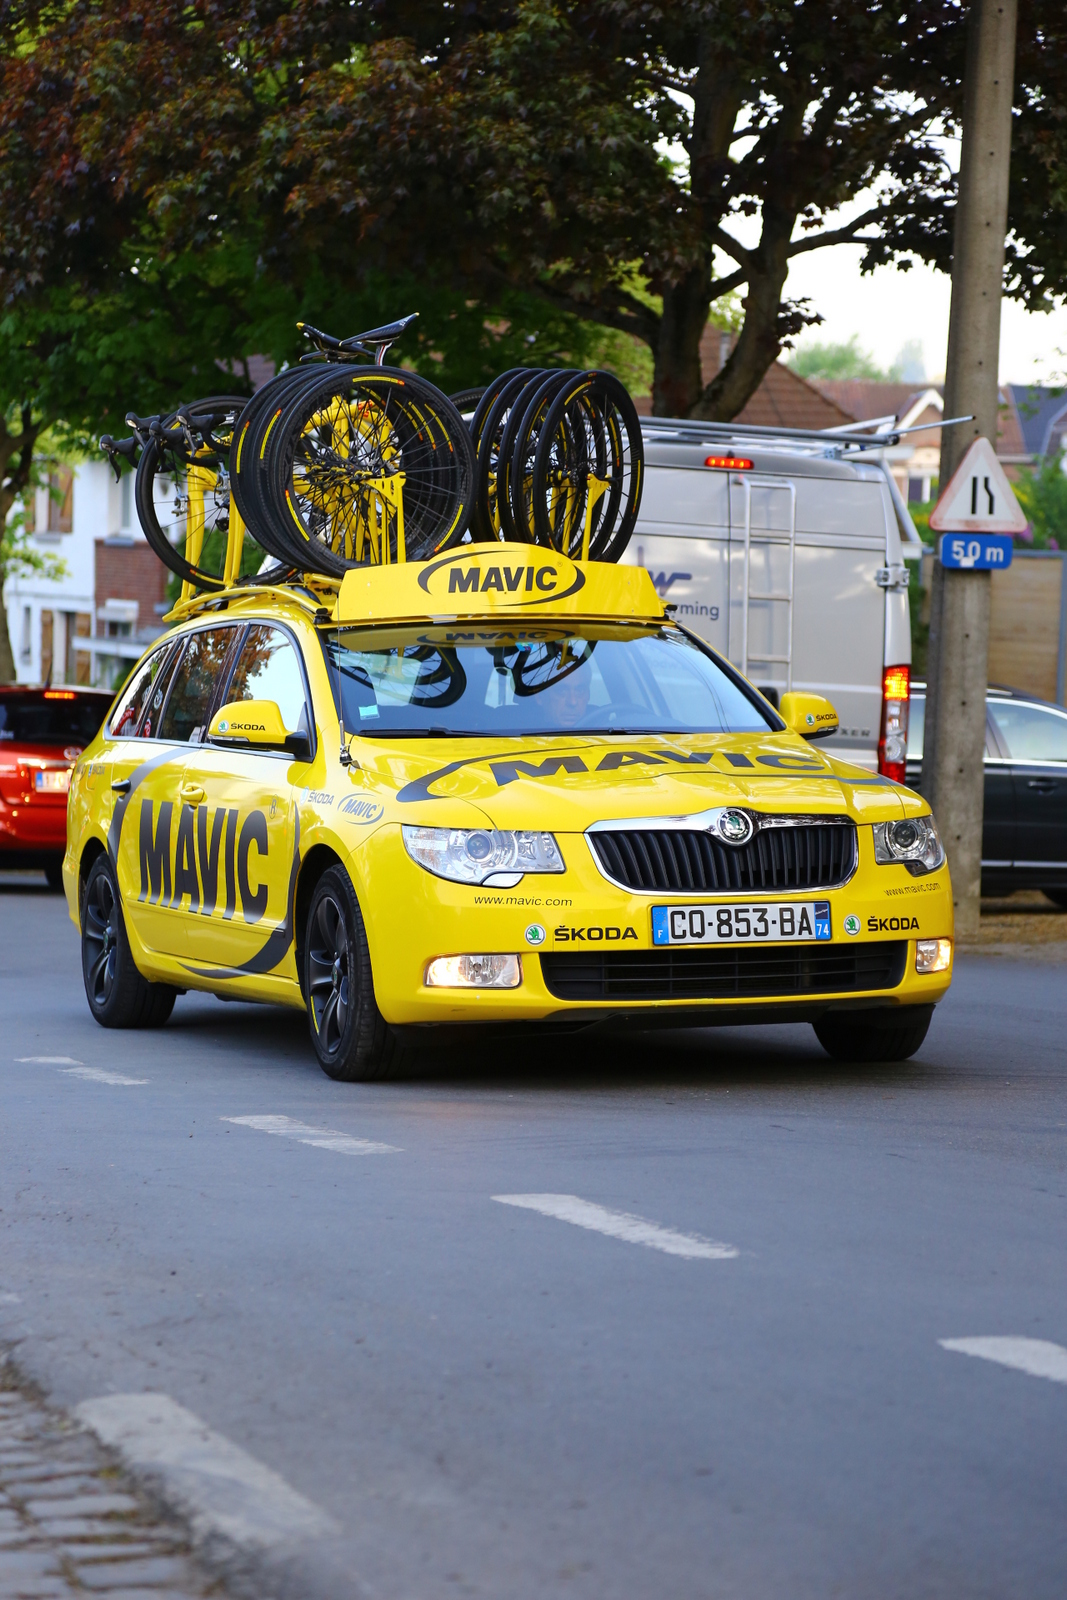 I still get a kick out of seeing those Mavic cars on rides I'm doing